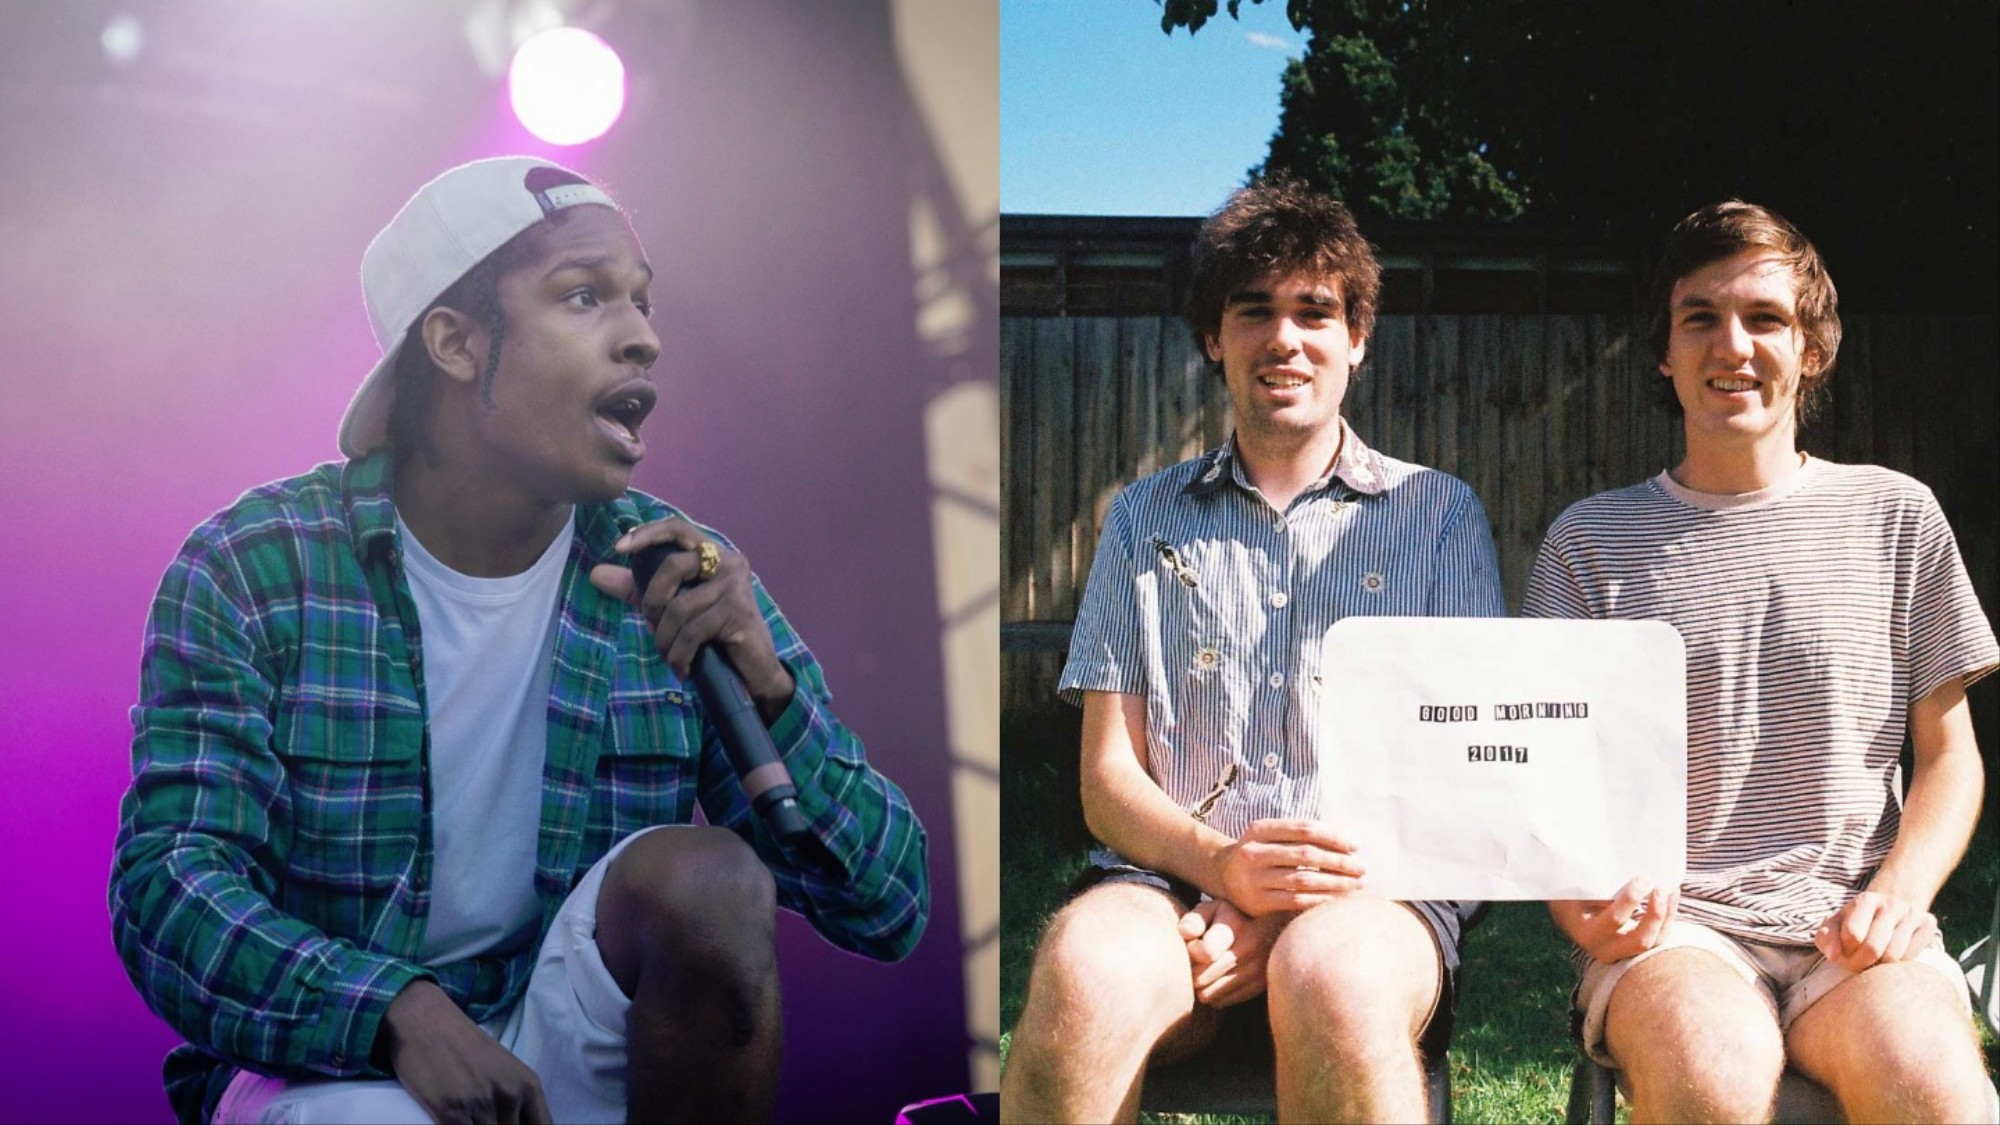 A$AP Rocky Samples an Australian Band on His New Album - VICE